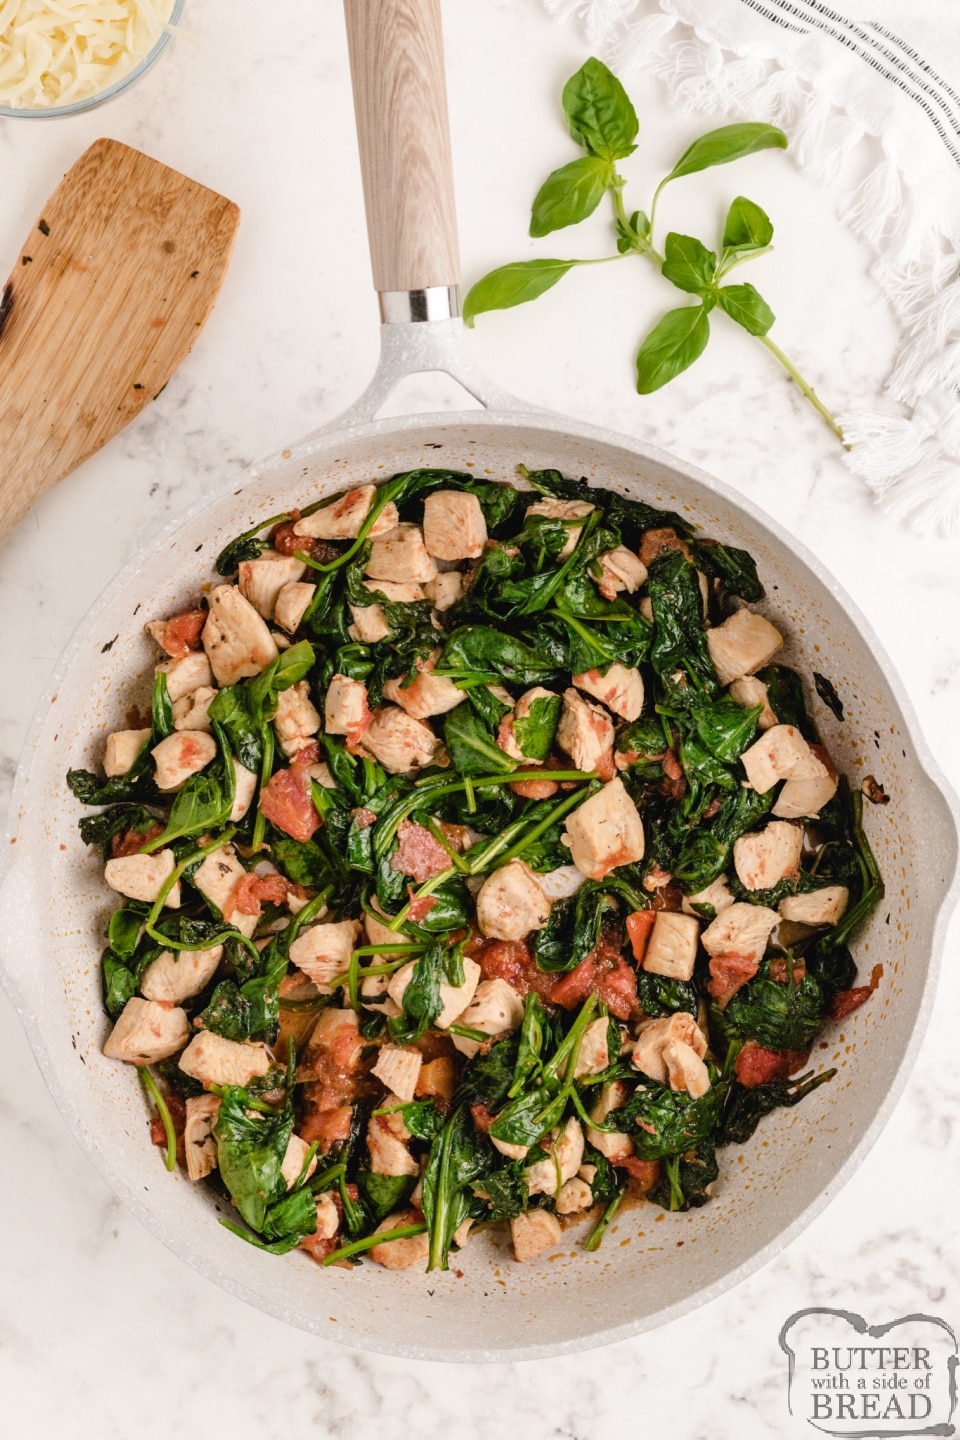 Italian Chicken Skillet is the perfect one-dish meal that can be made in less than 30 minutes! Perfect simple and healthy dinner recipe full of chicken, tomatoes, spinach and mozzarella.